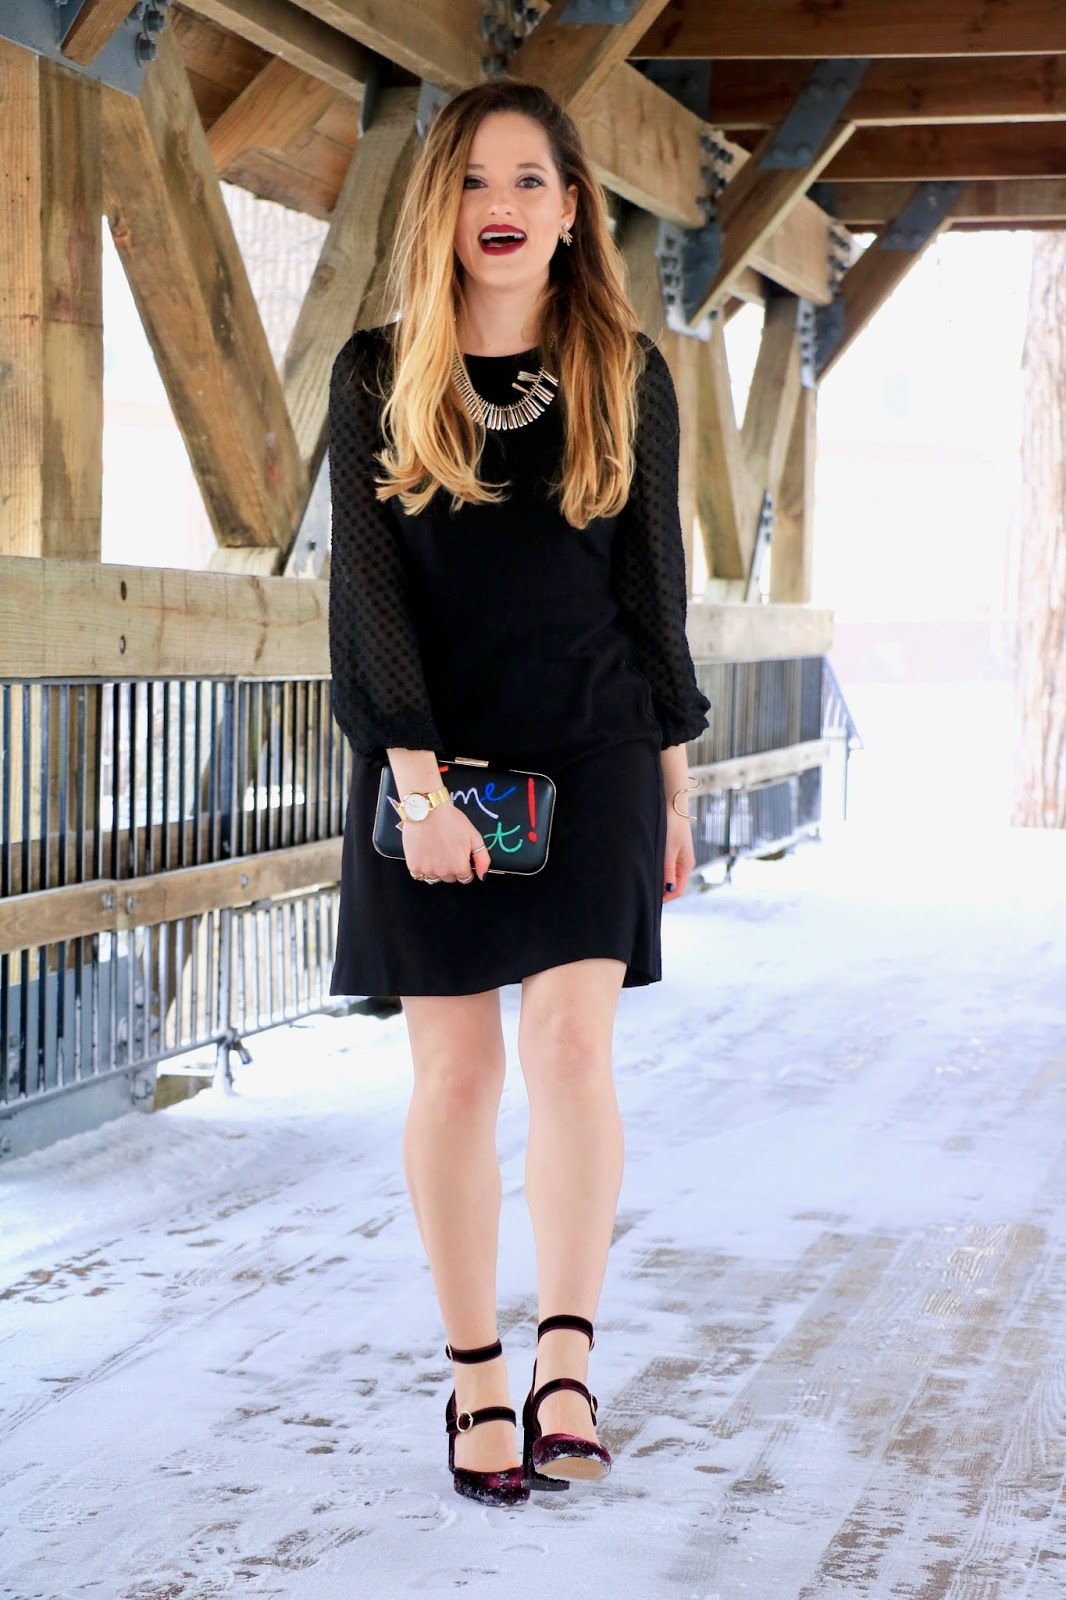 Nyc fashion blogger Kathleen Harper showing how to wear a dress in the winter